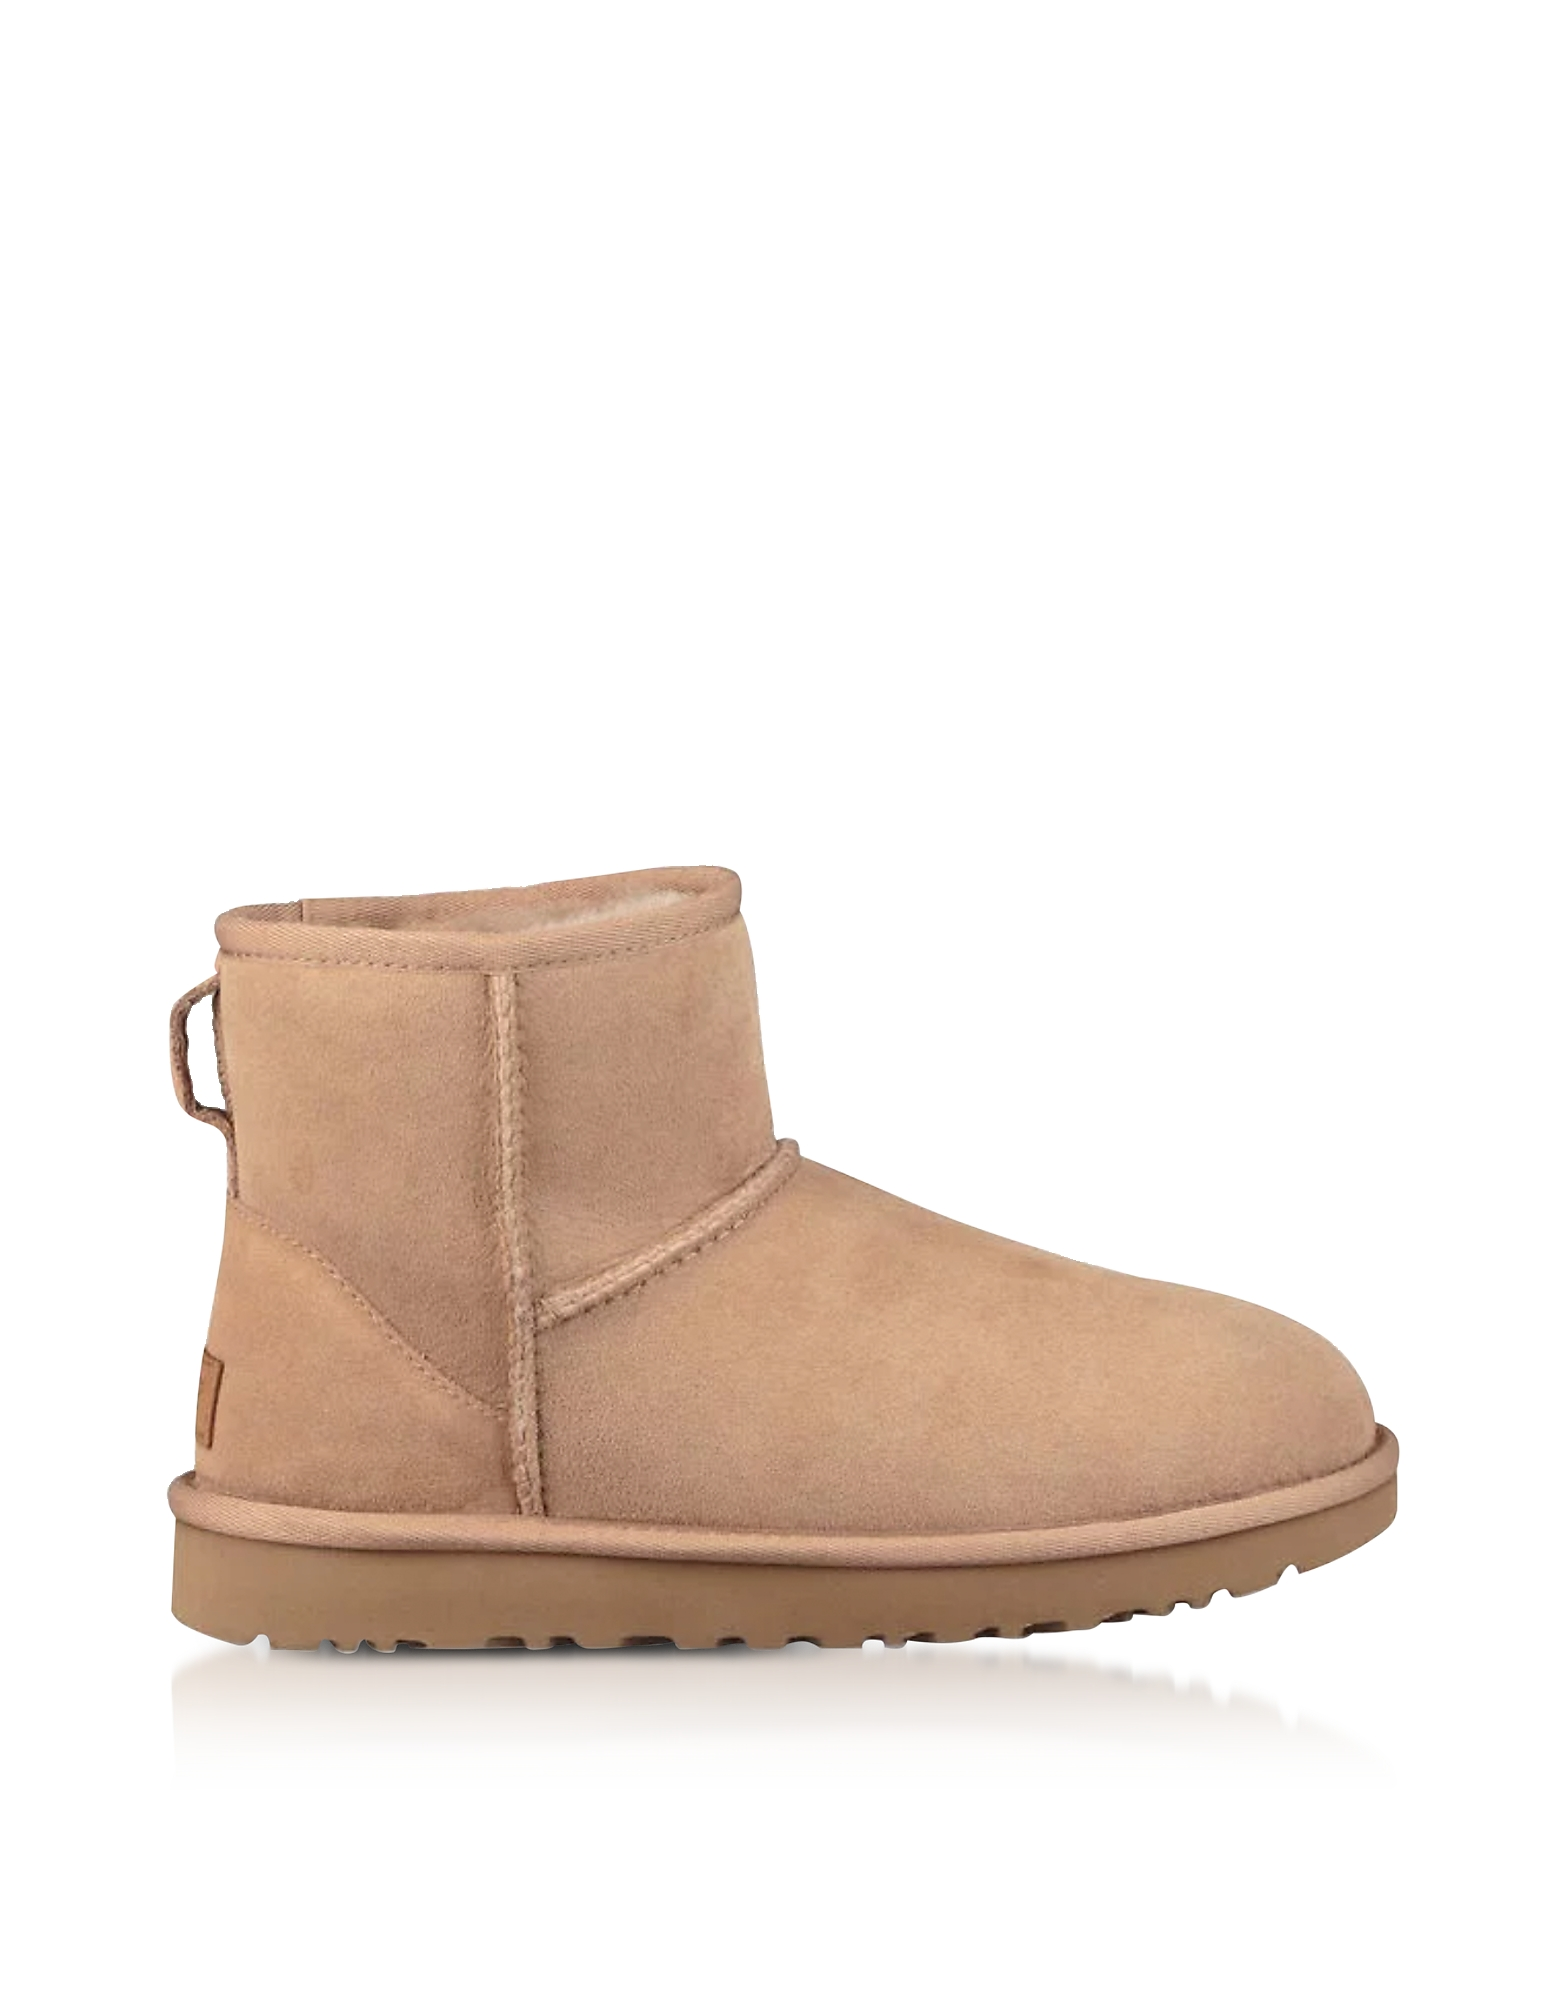 UGG Shoes, Fawn Classic Mini II Boots